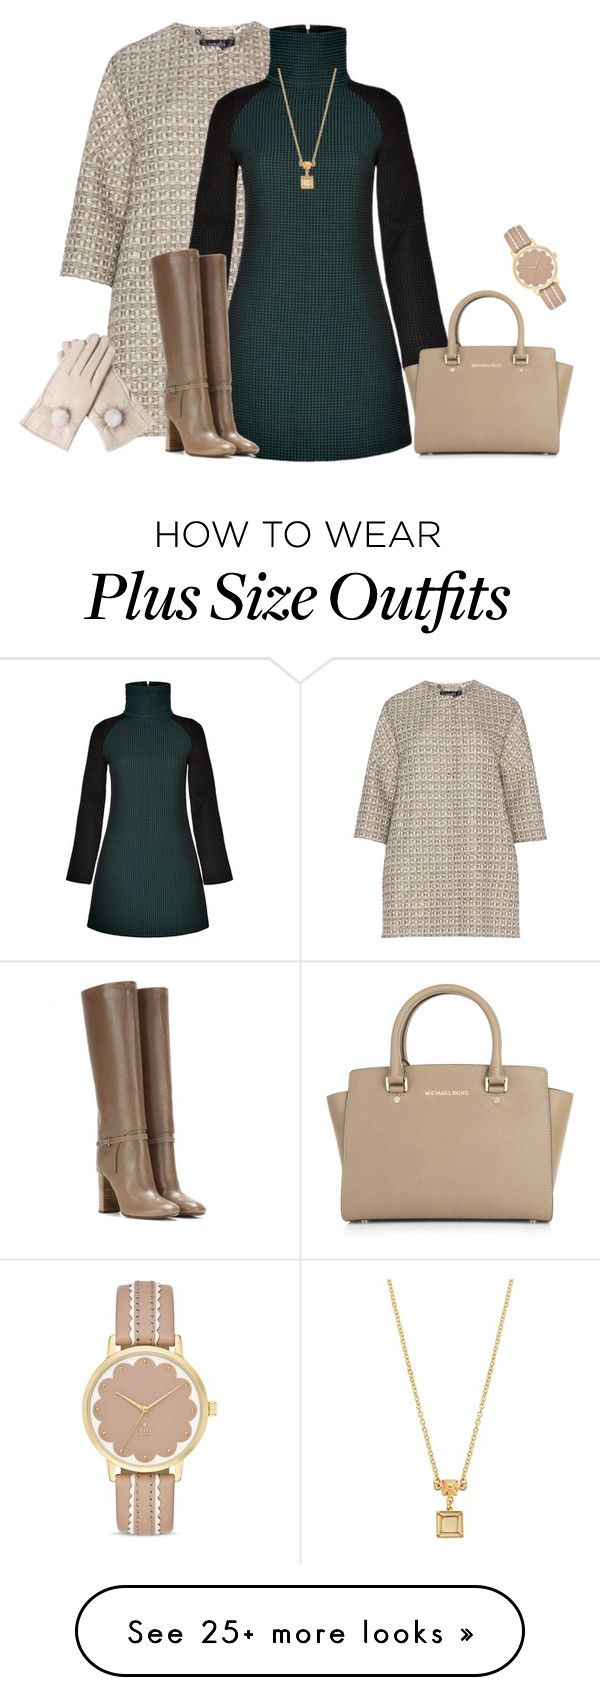 """outfit 3466"" by natalyag on Polyvore featuring navabi, AV by Adriana Voloshchuk, Tory Burch, Michael Kors, Kate Spade and Marc by Marc Jacobs"